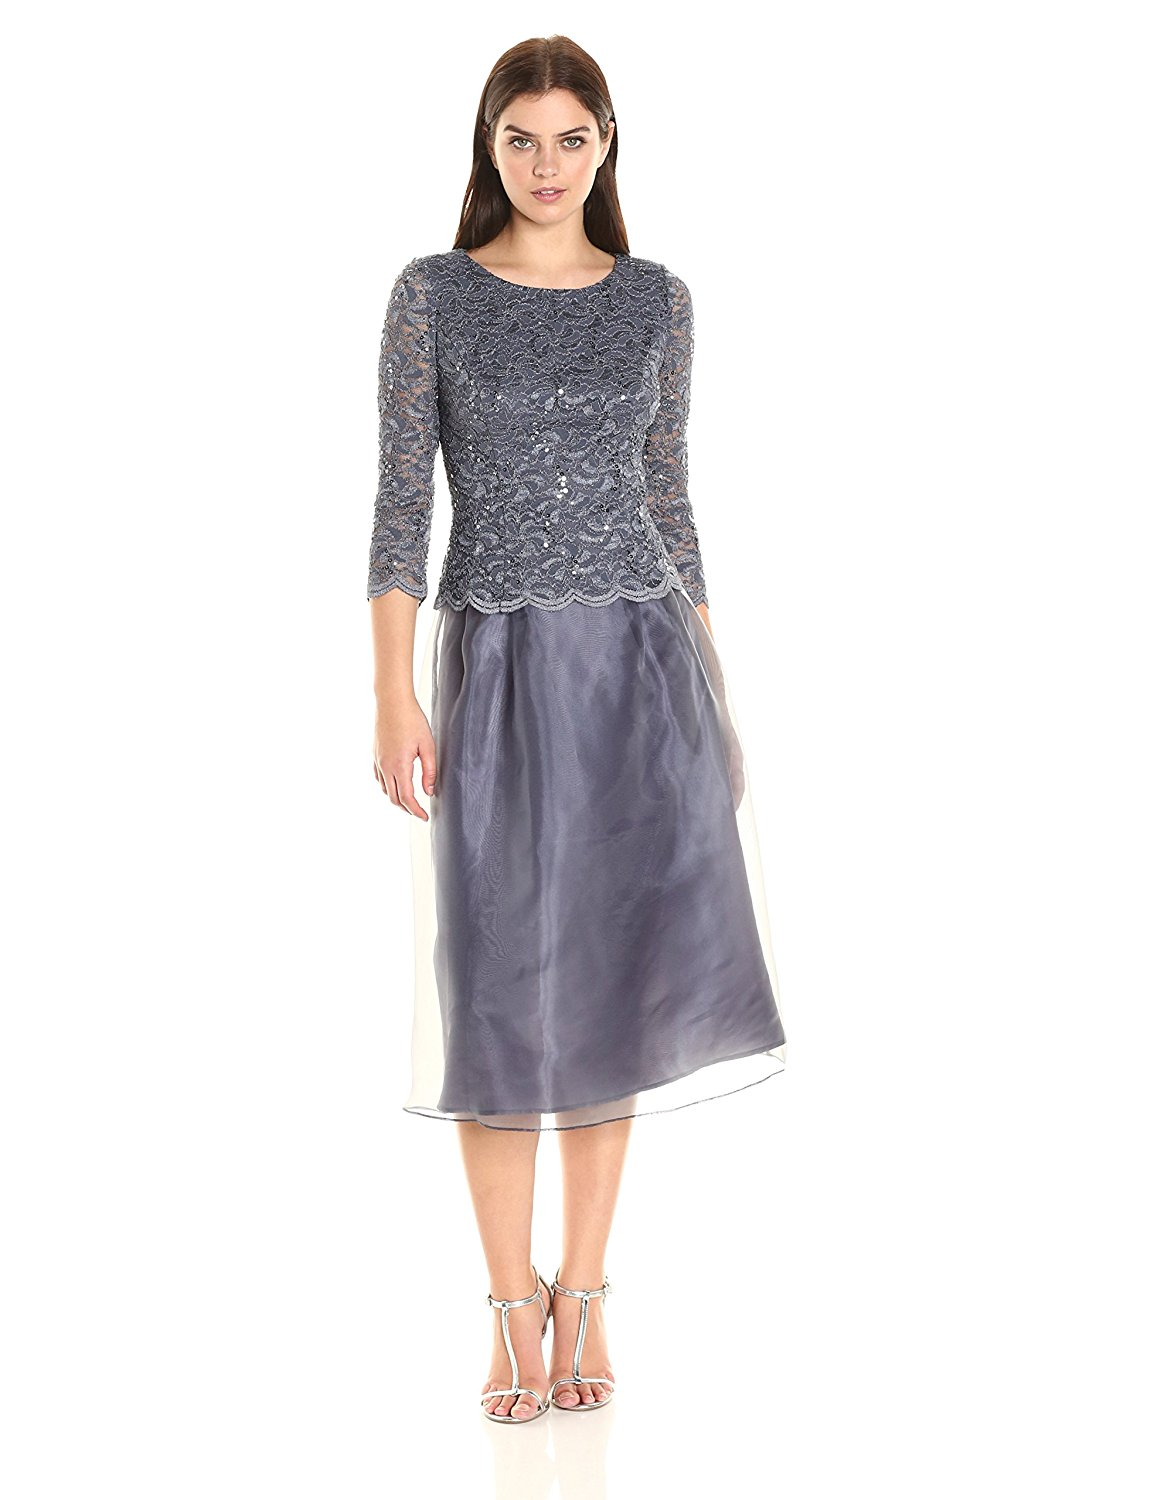 Sangria Womens Textured Fabric Bodice Fit /& Flare Dress with Taffeta Skirt